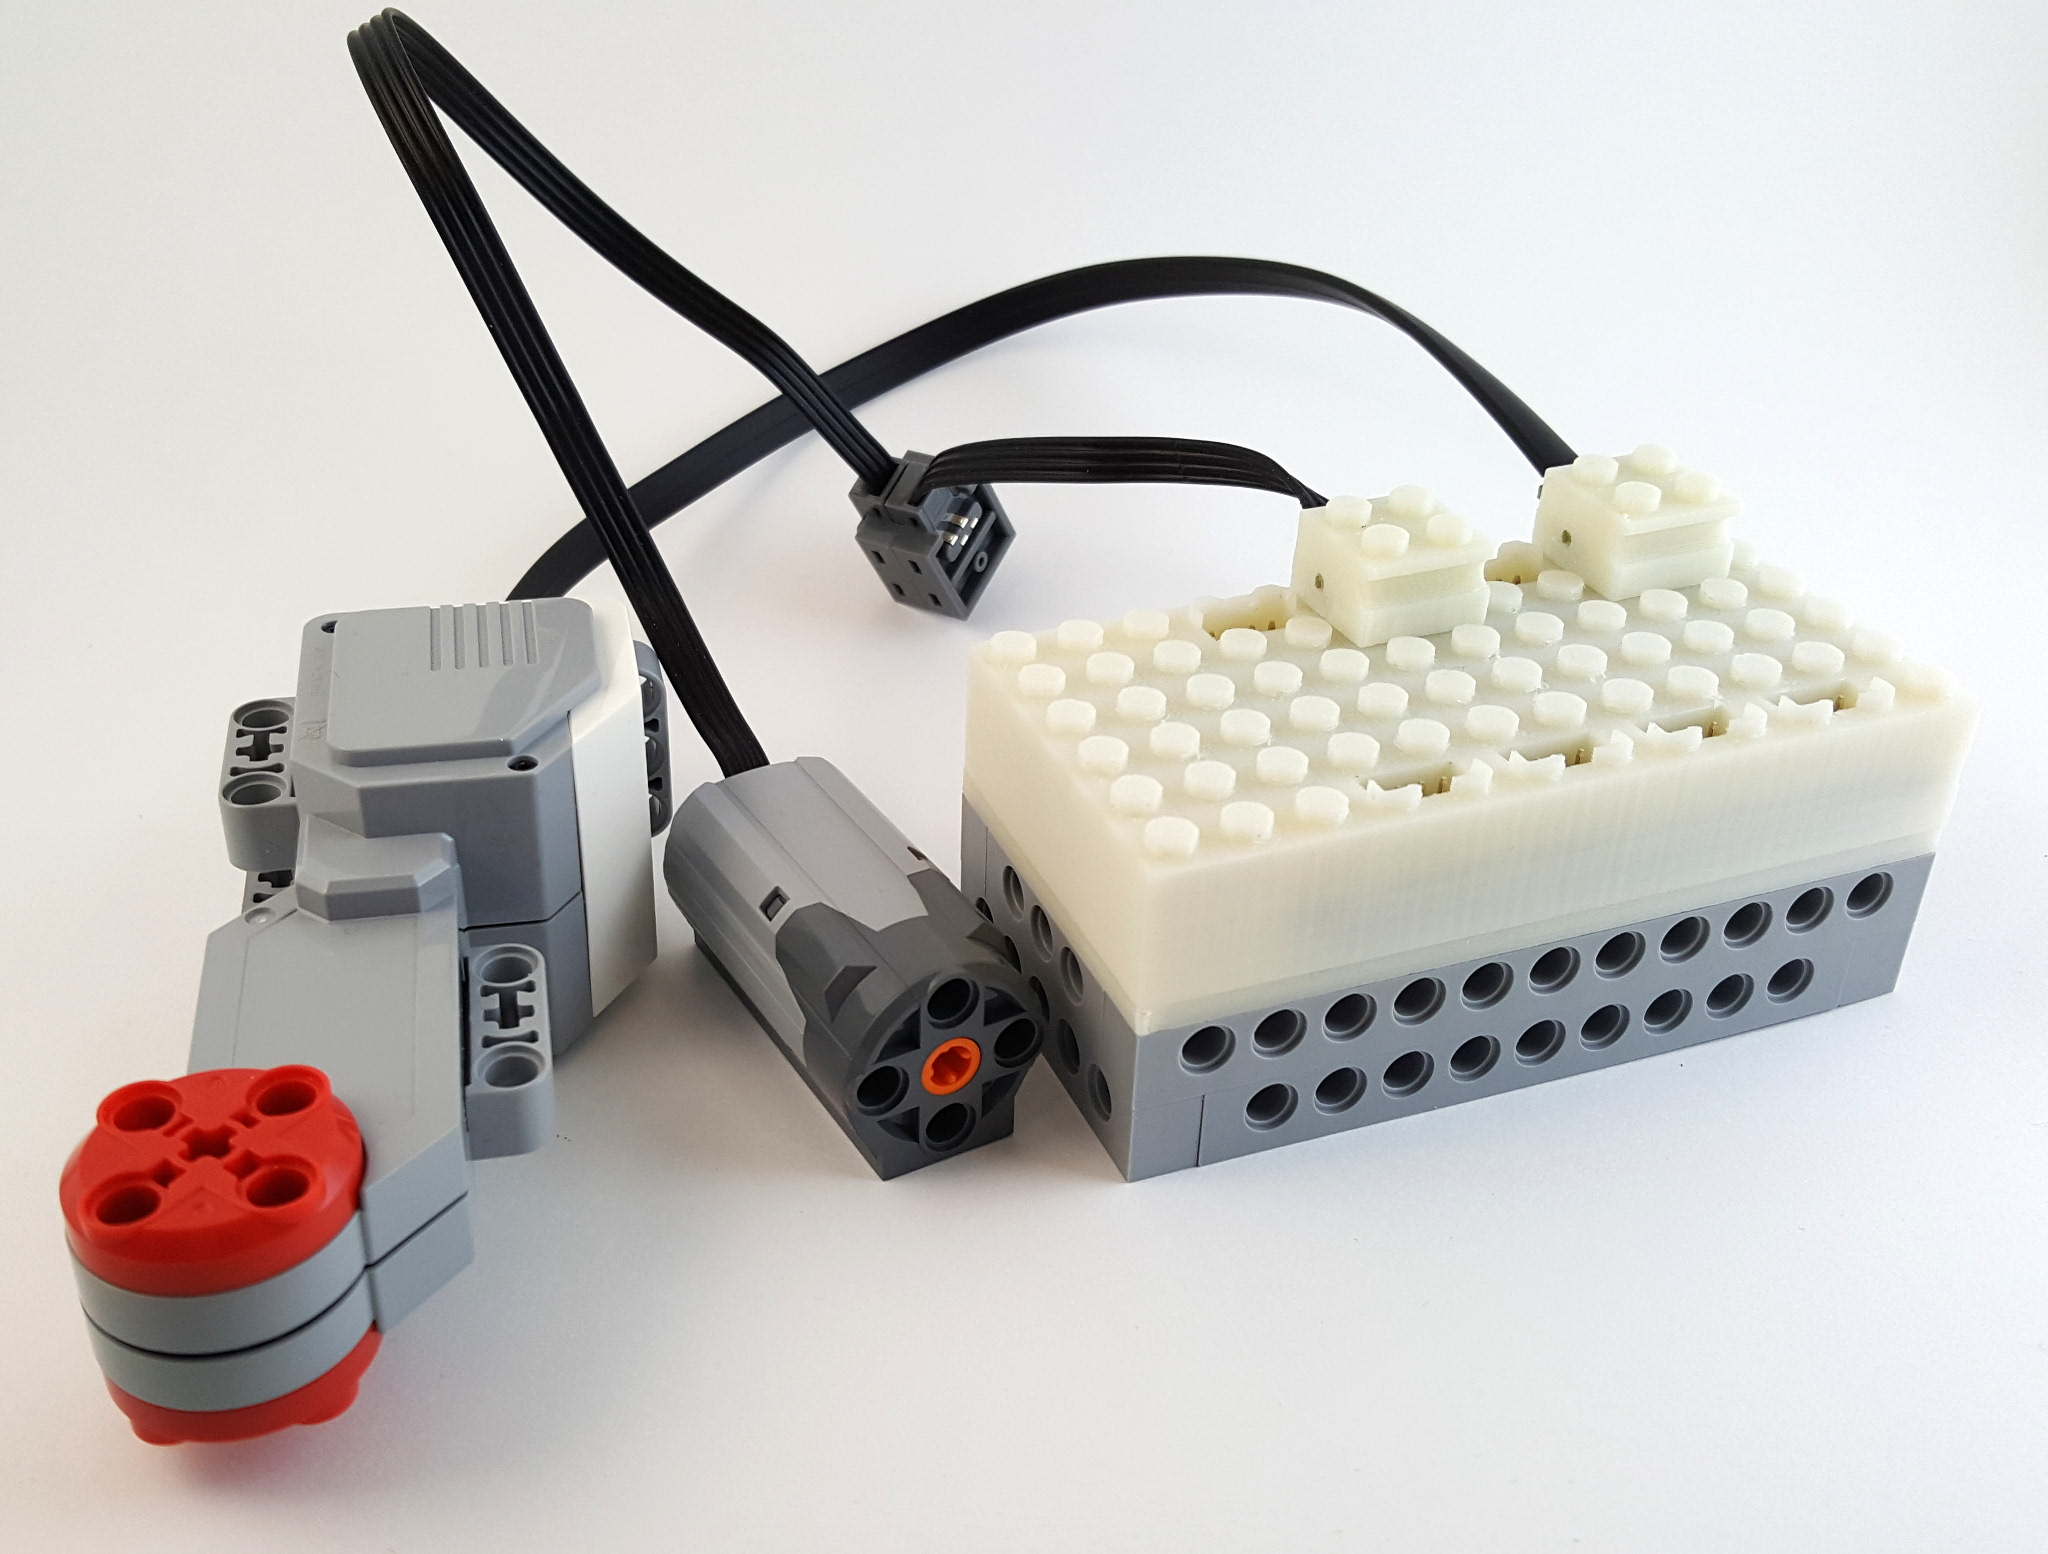 Drives LEGO motors